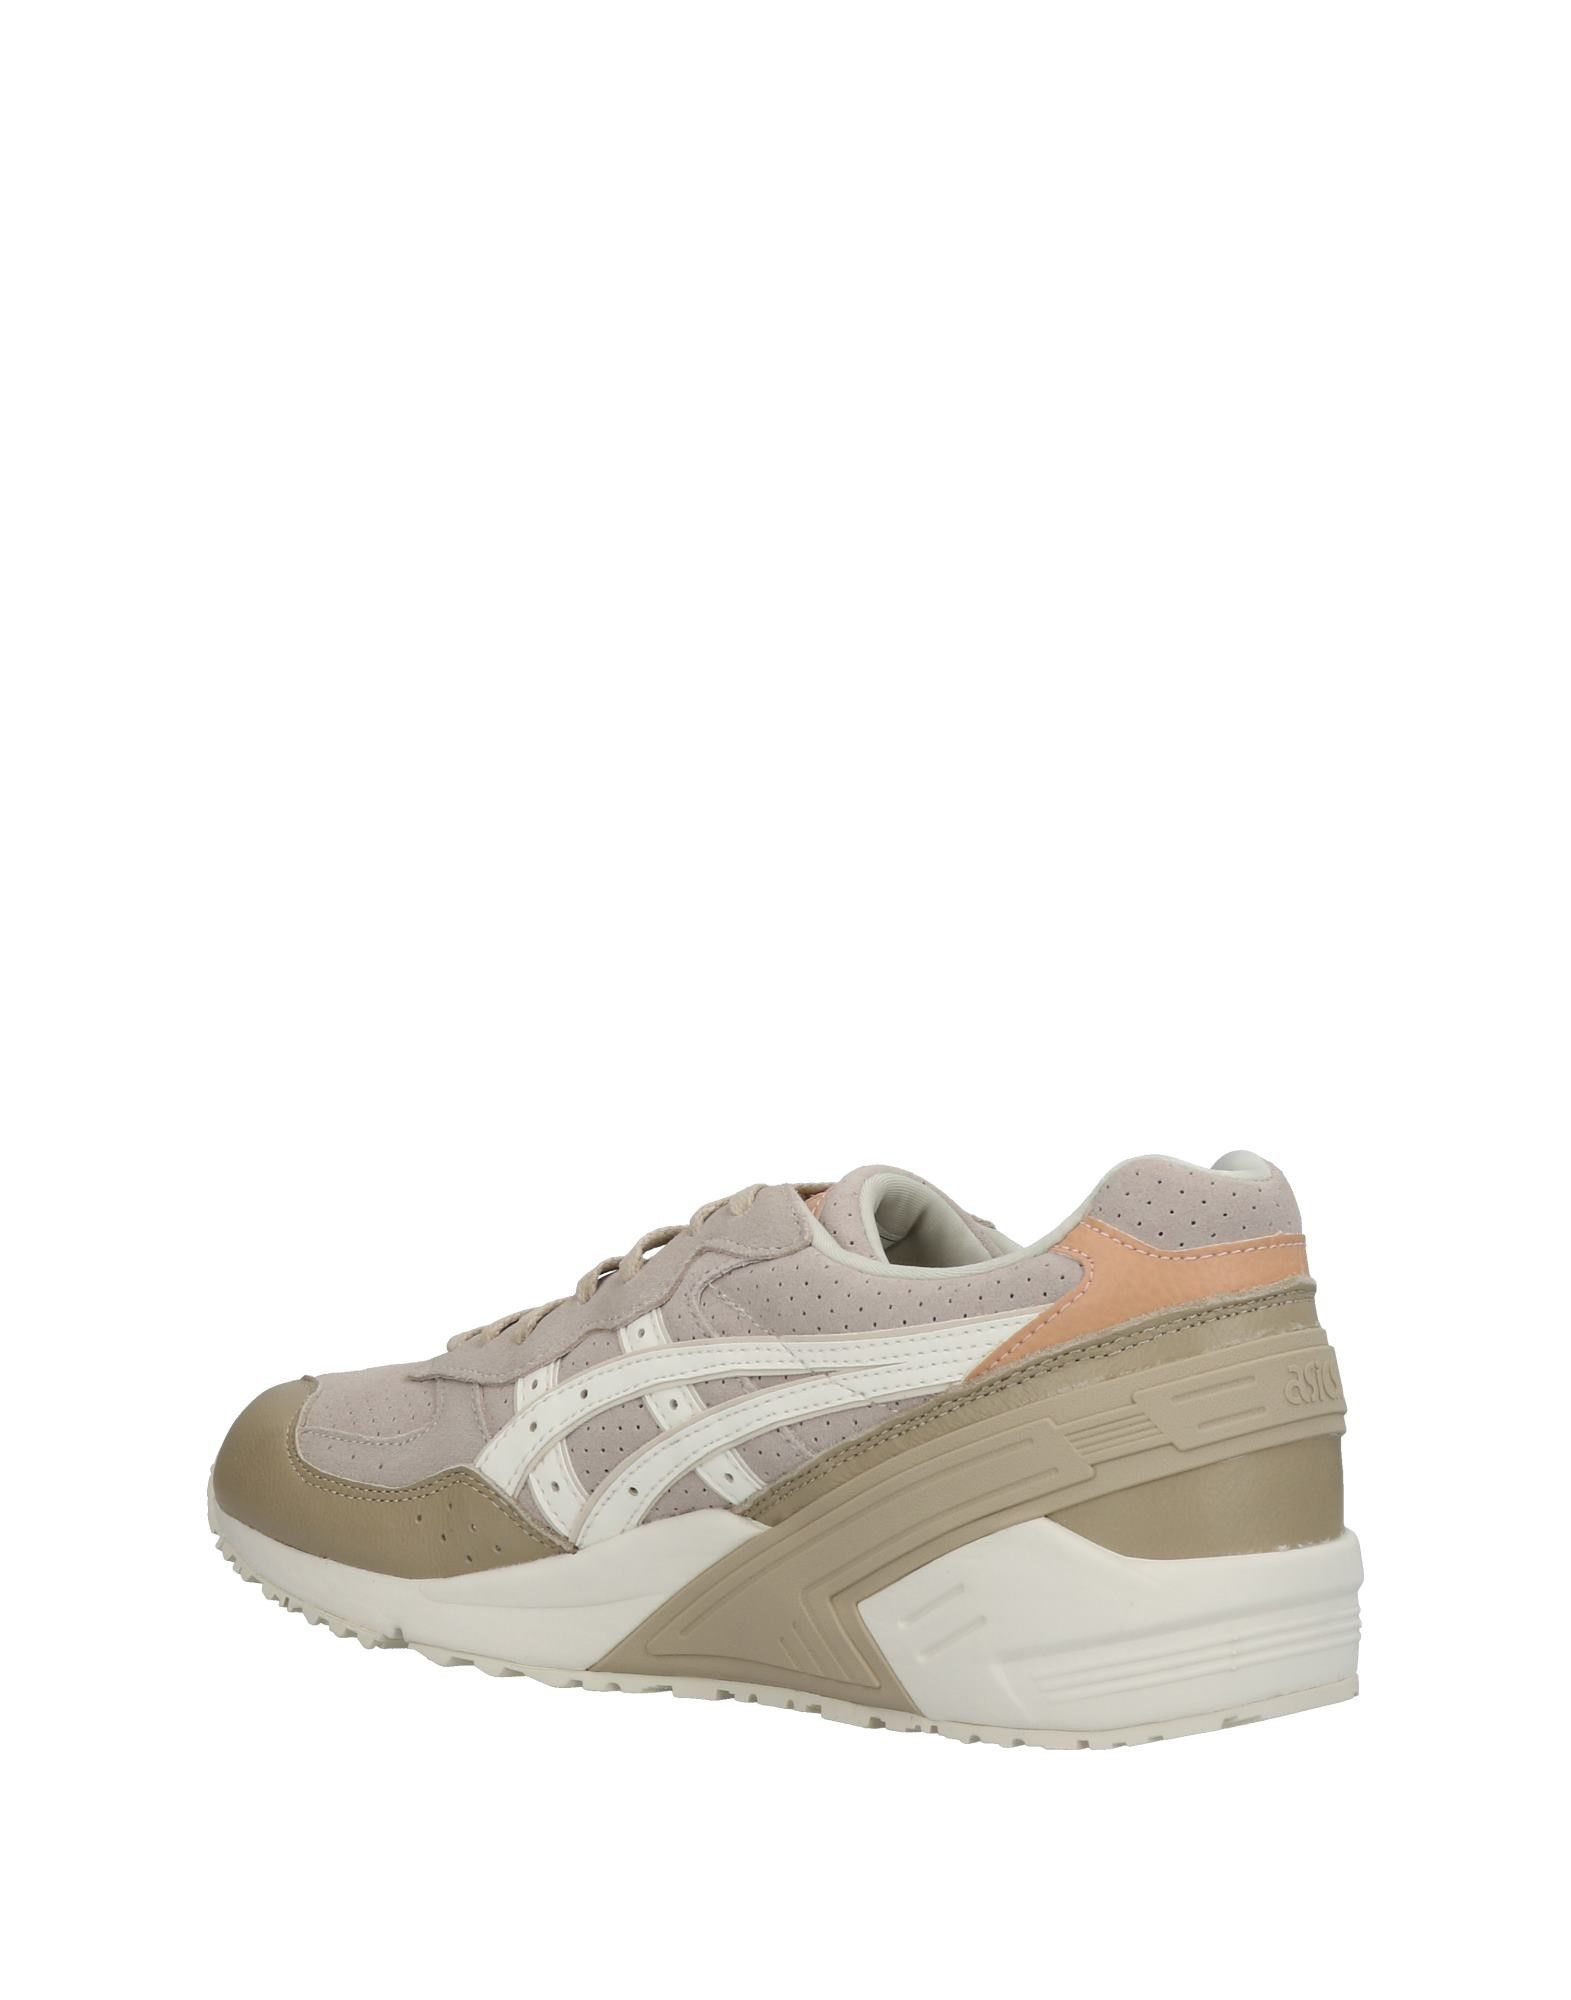 Asics Tiger Sneakers - Men Asics Tiger Sneakers online 11366705AD on  Canada - 11366705AD online 927b18